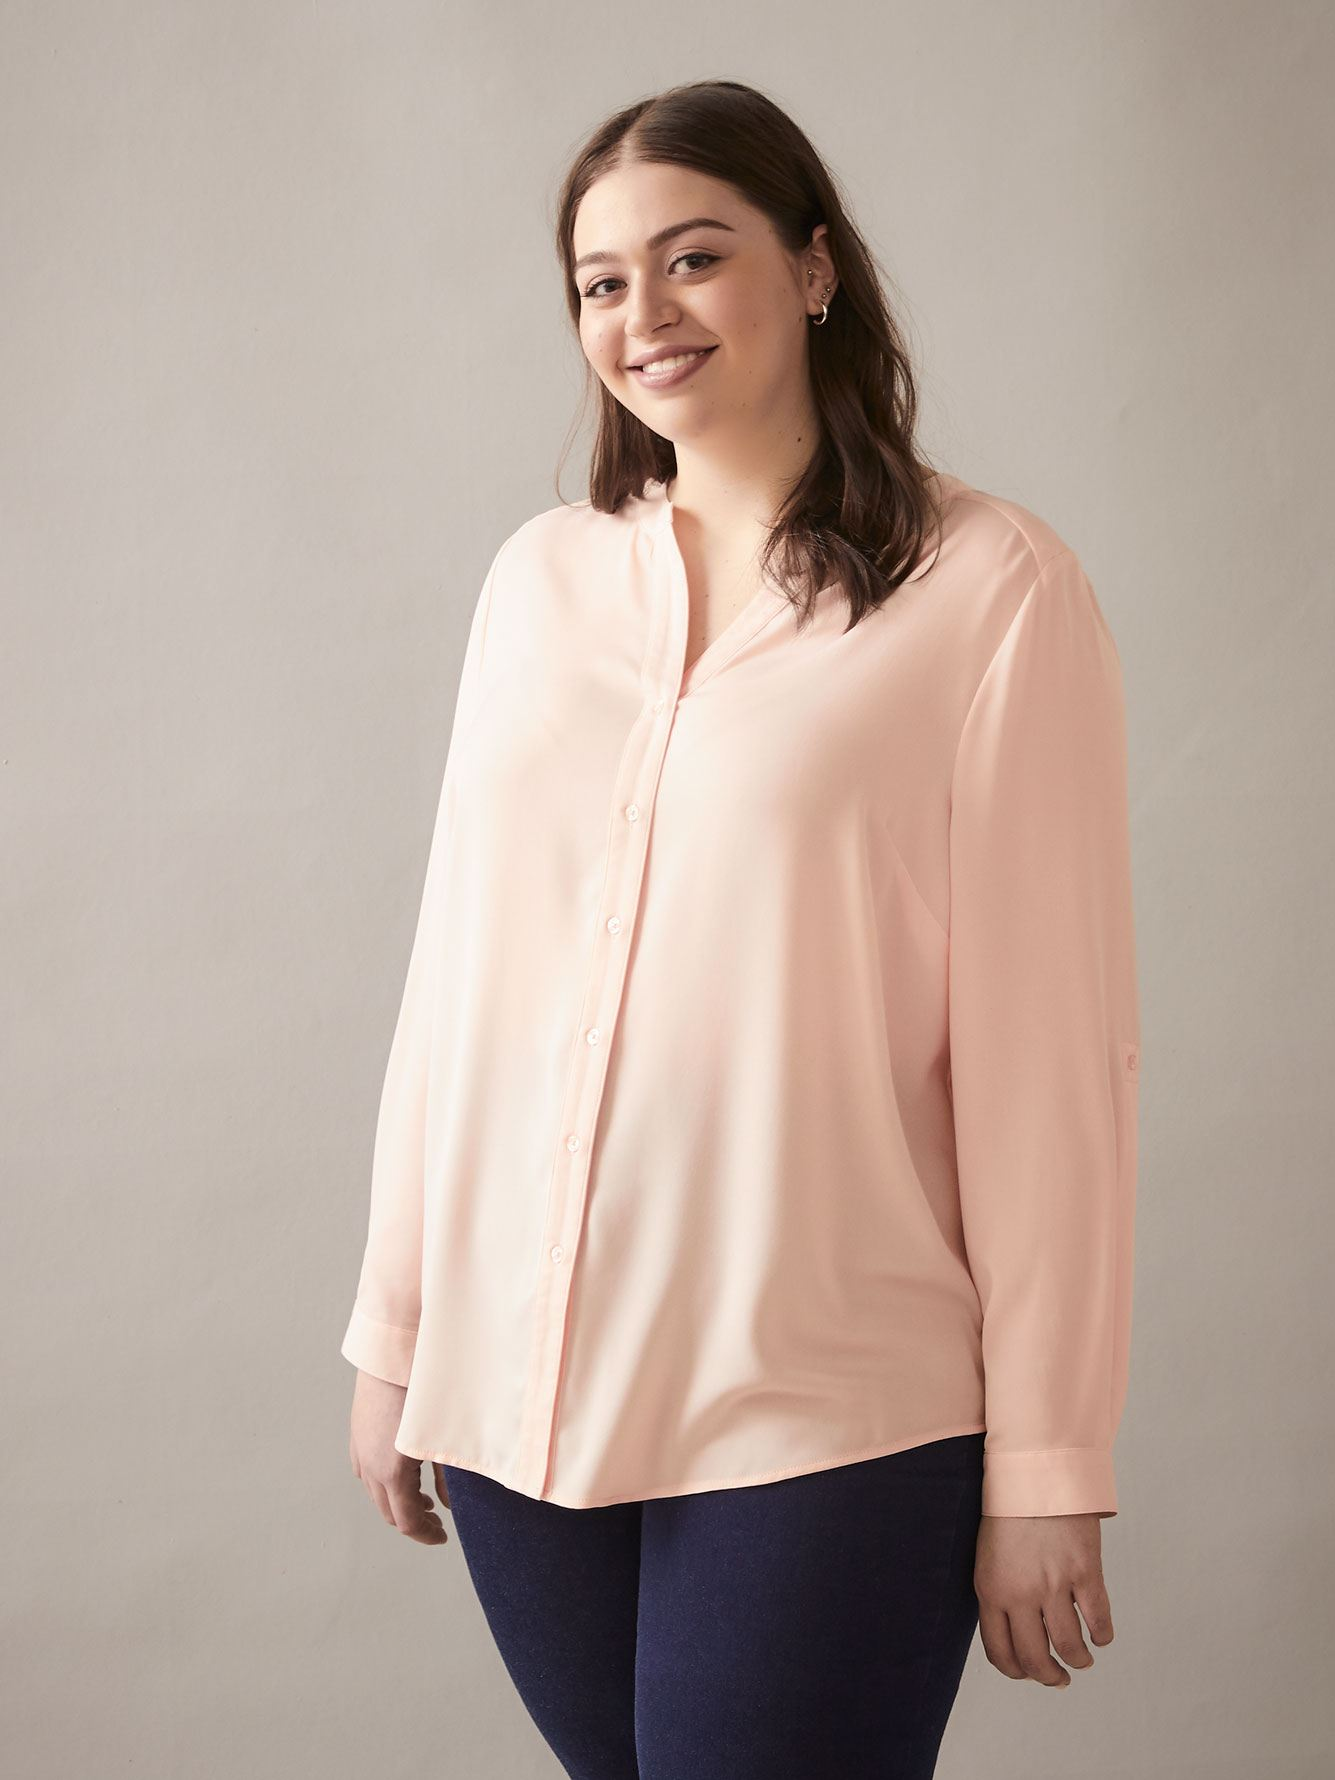 Long-Sleeve Button-Front Blouse - In Every Story